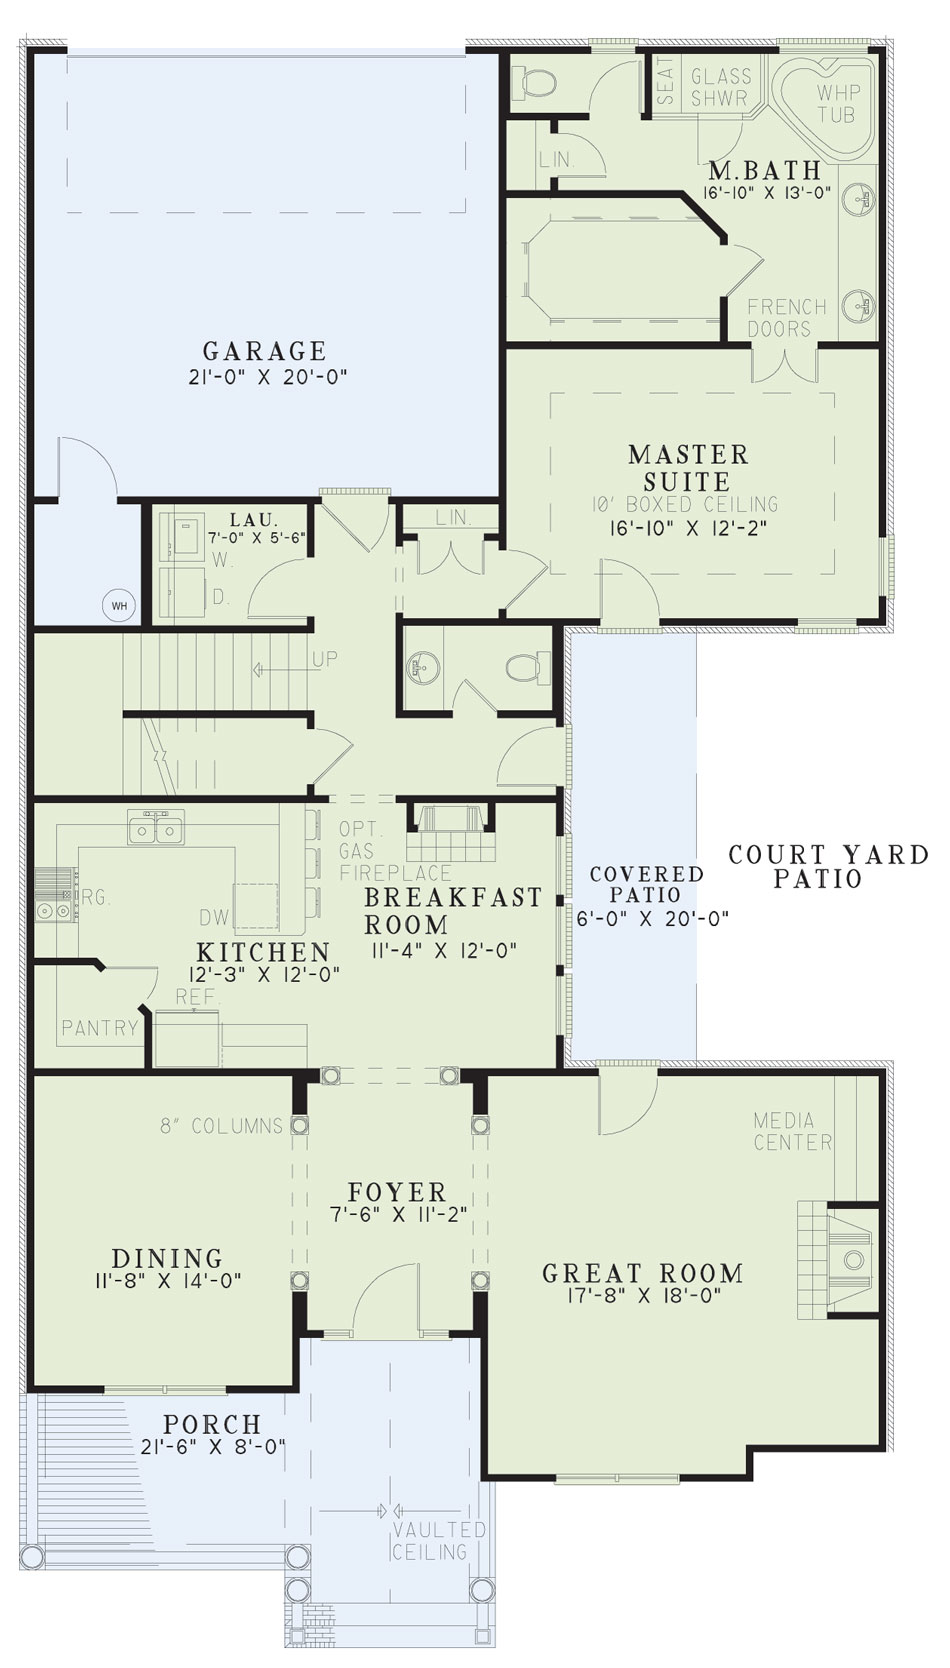 House Plan NDG 391 Main Floor